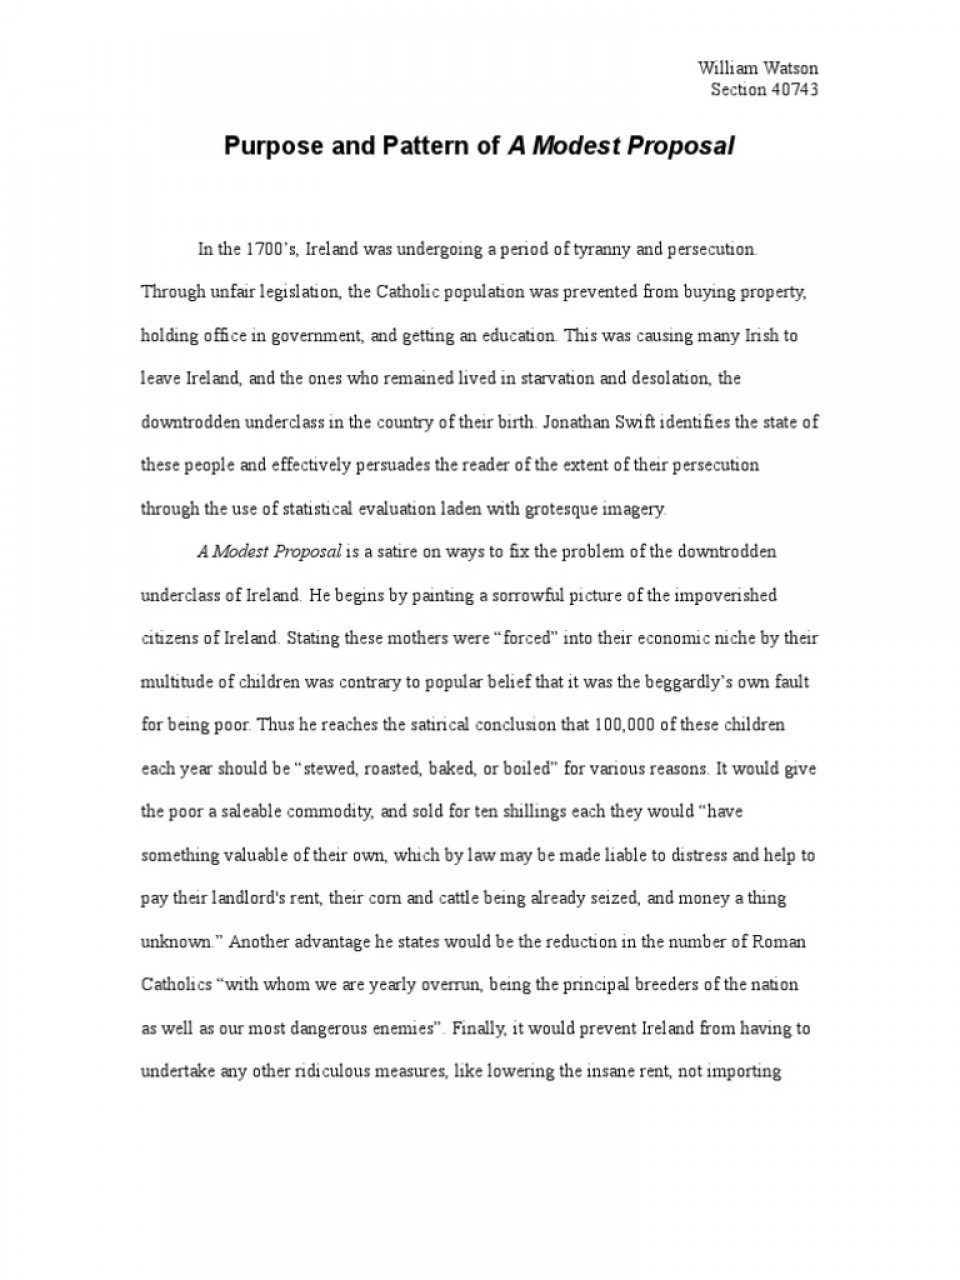 029 Satirical Essay Topics Example Worksheet Modest Proposal Answers Grass Frightening Satire On Obesity For College 111 960